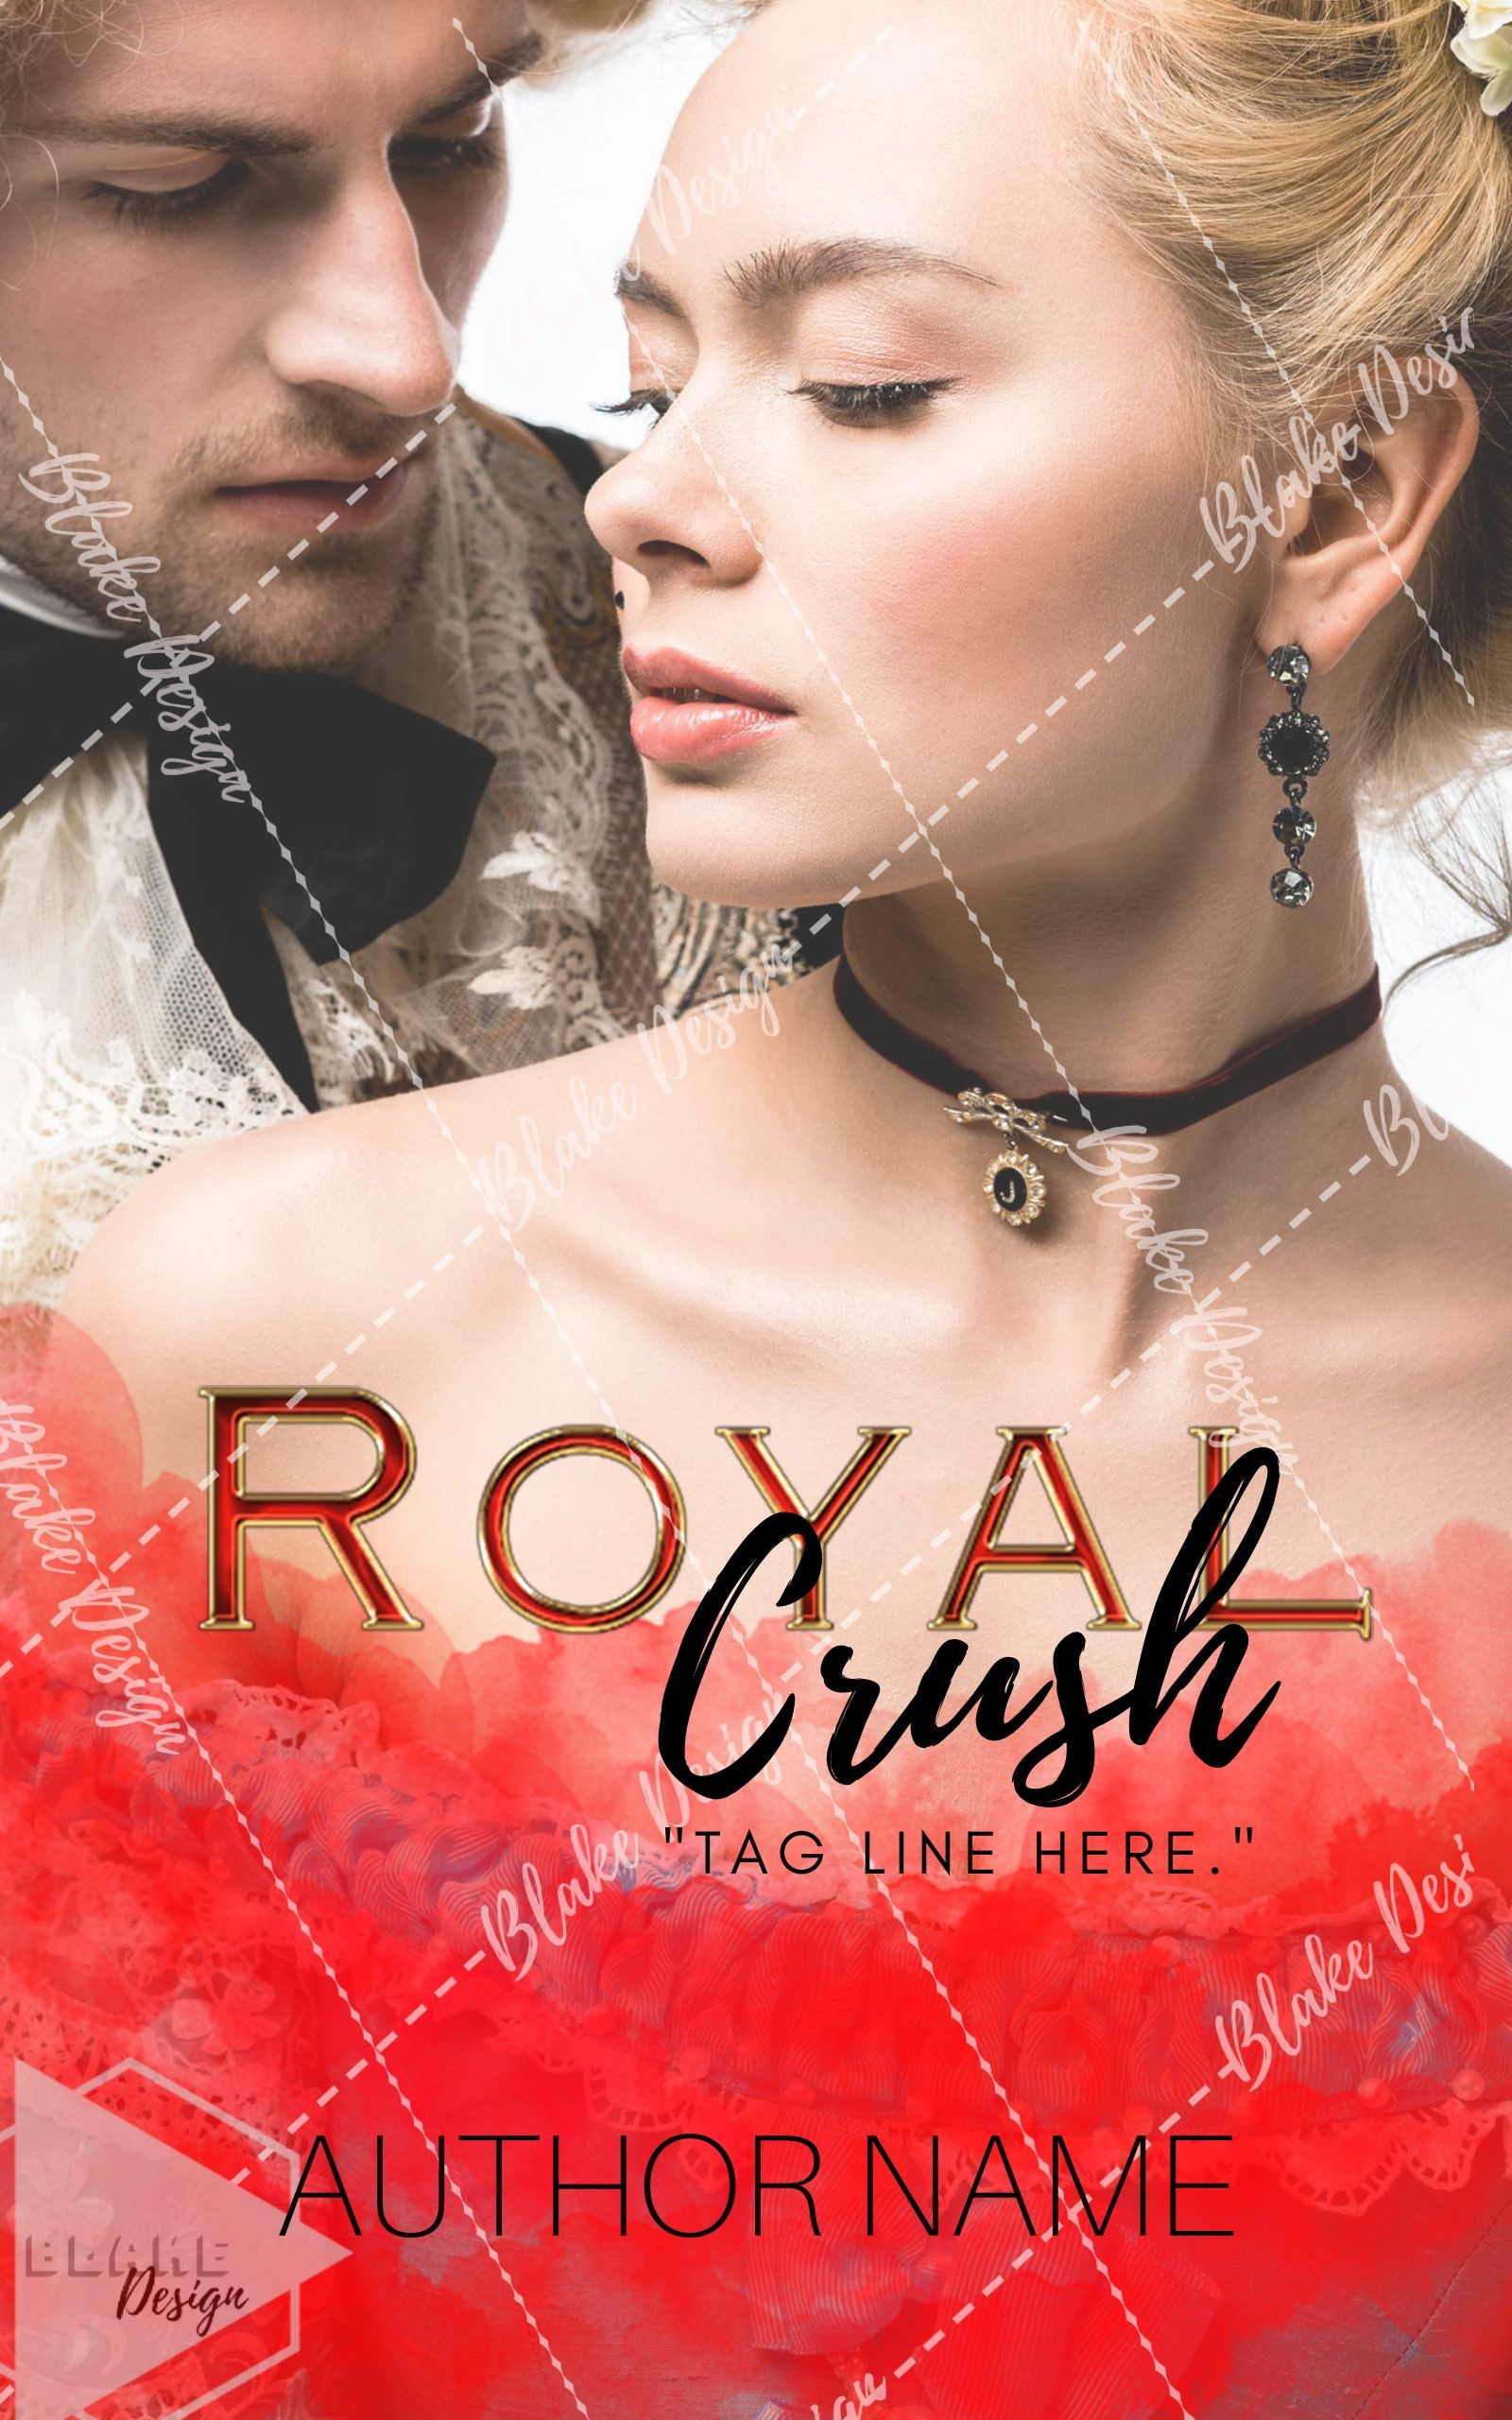 Royal Crush